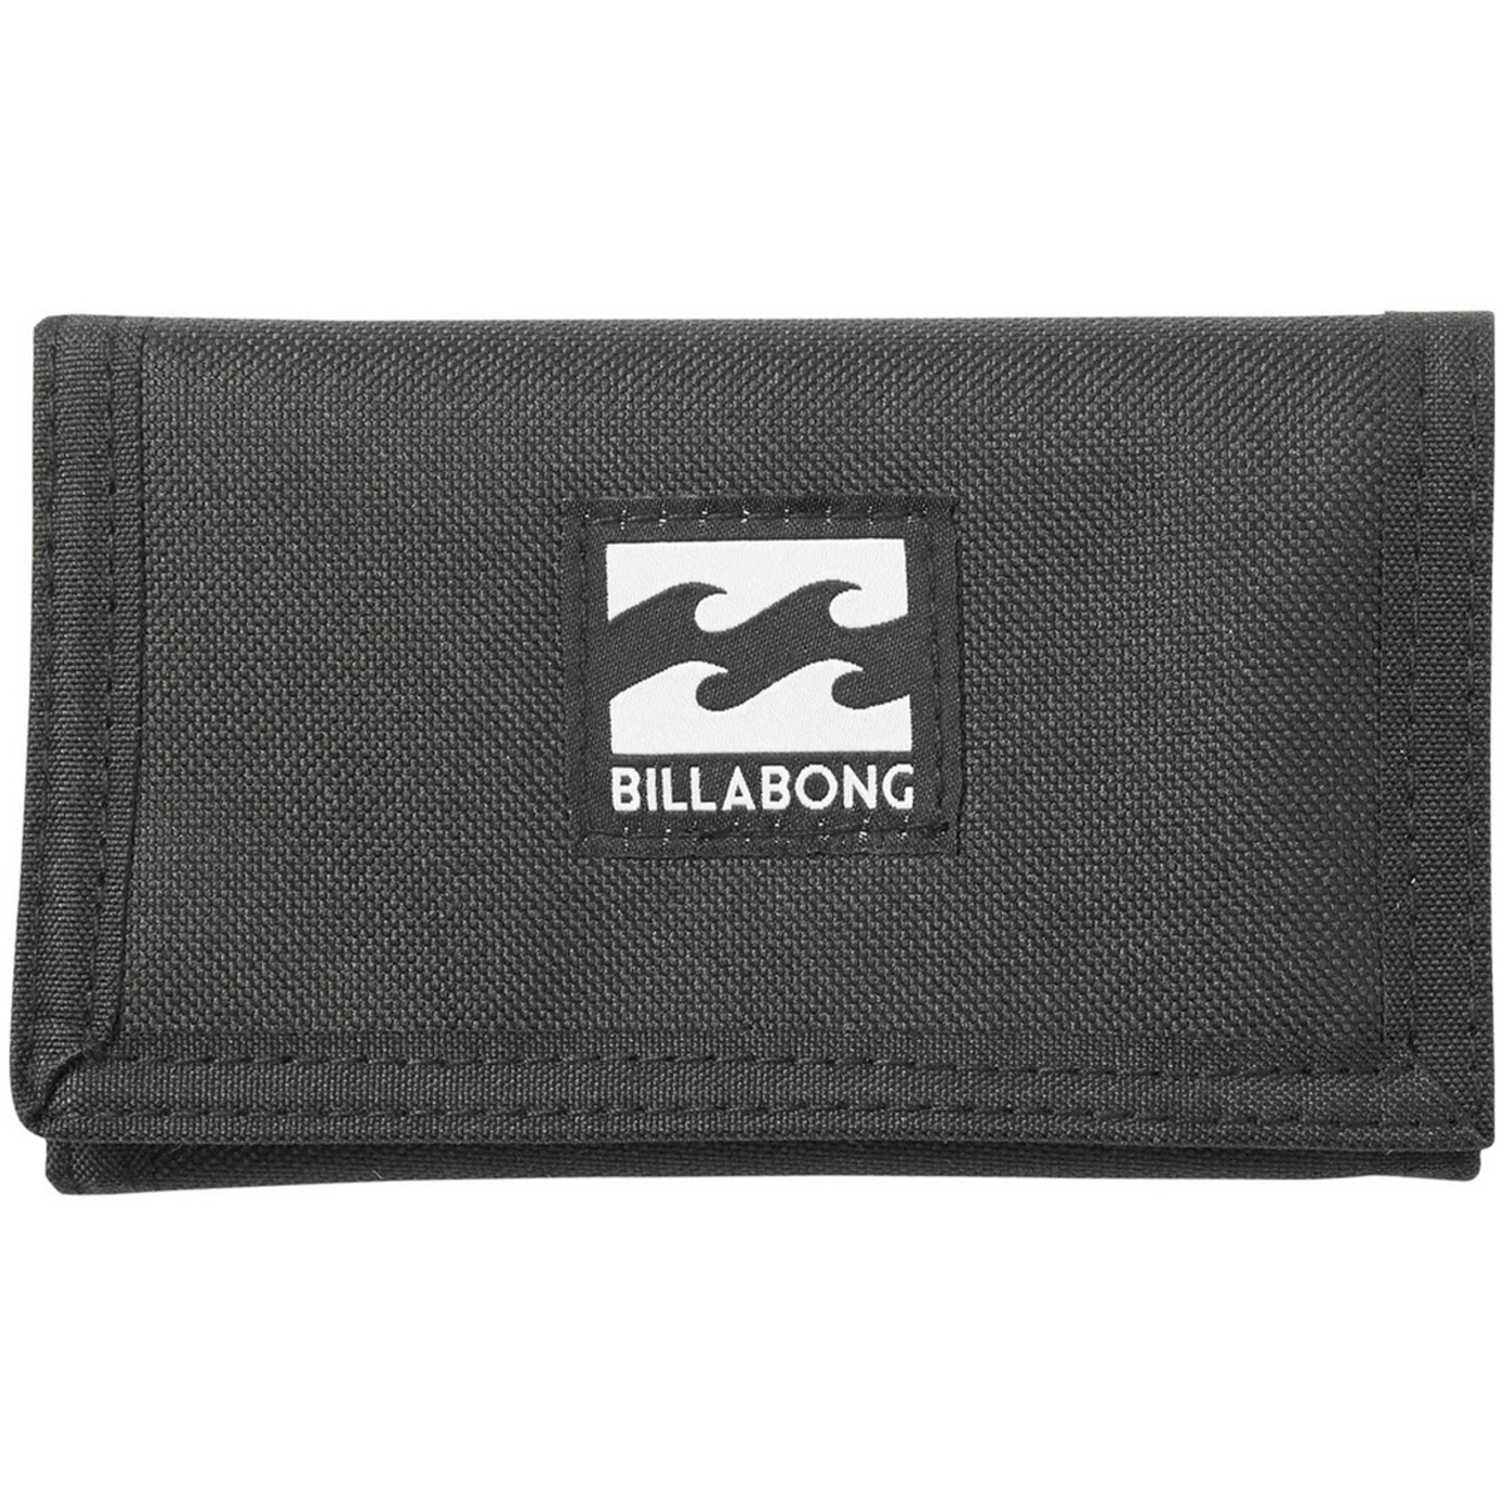 Billeteras de Hombre Billabong Gris / blanco atom wallet